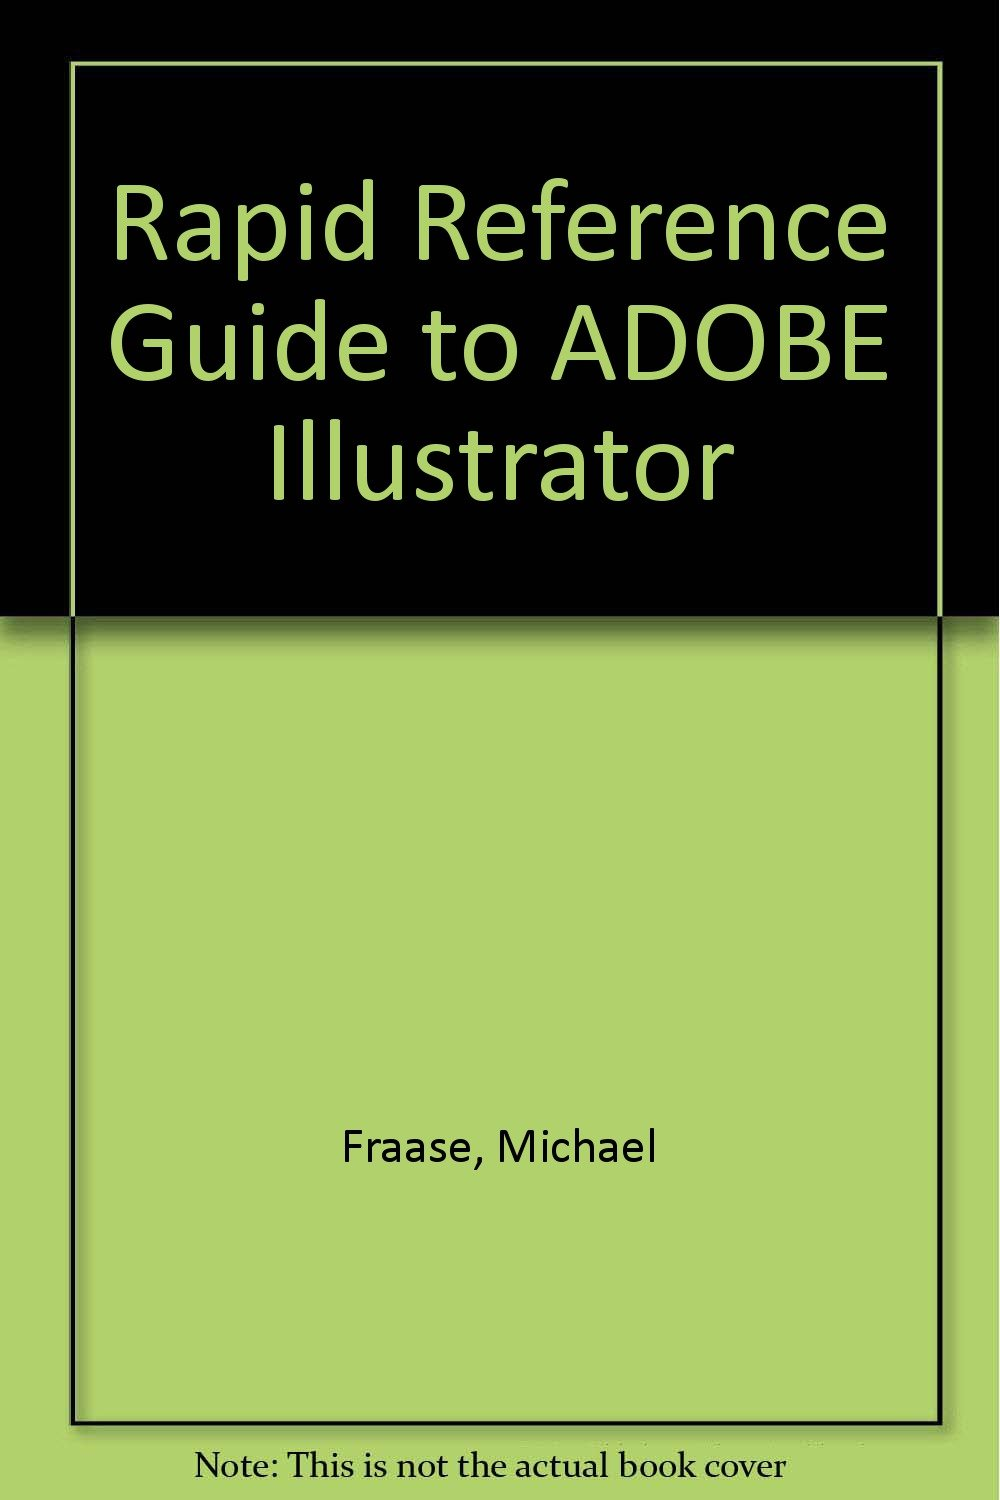 Rapid Reference Guide to Adobe Illustrator (Rapid Reference Series)